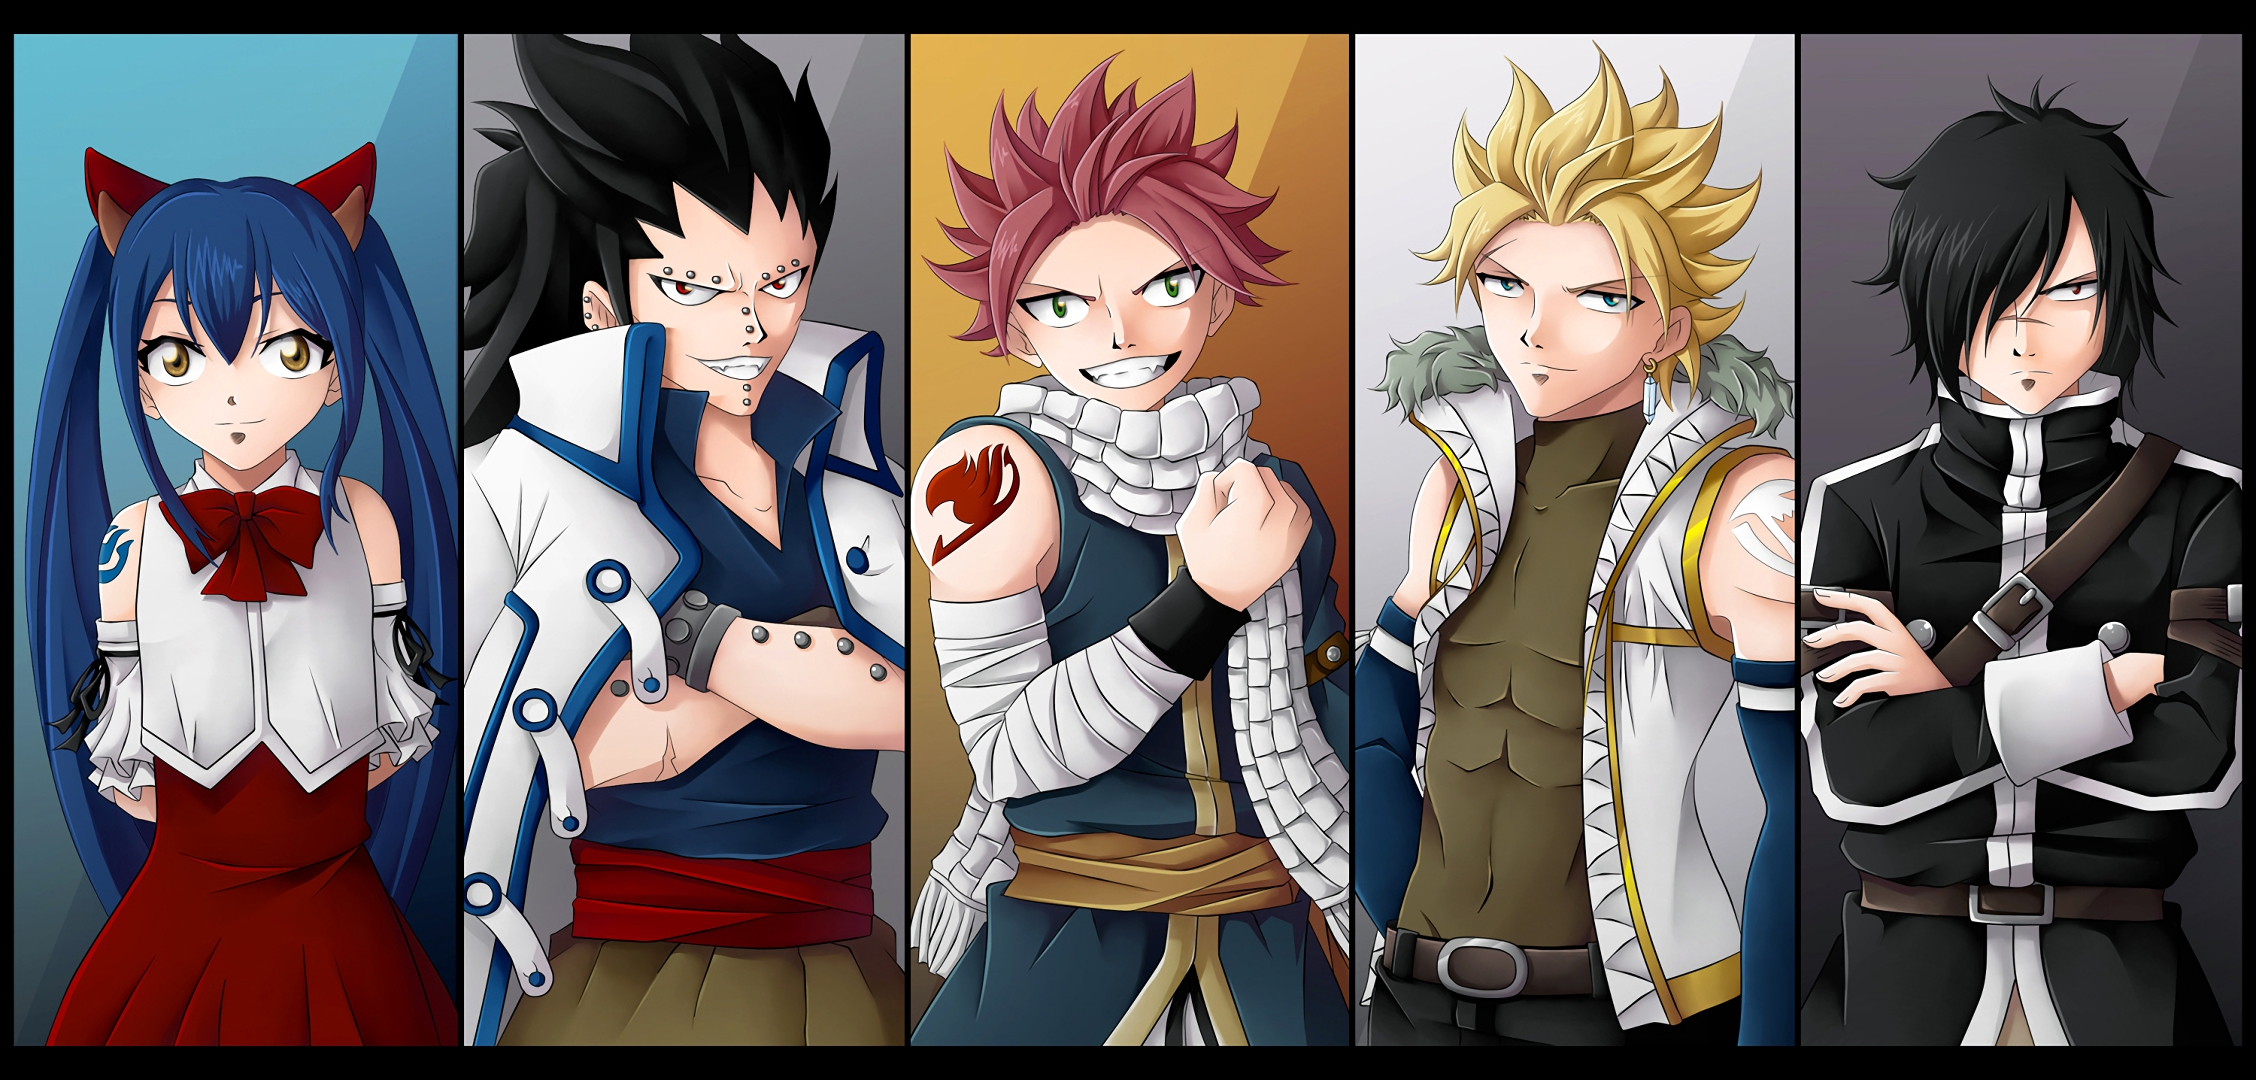 Fairy Tail Fond D Ecran Hd Arriere Plan 2256x1080 Id